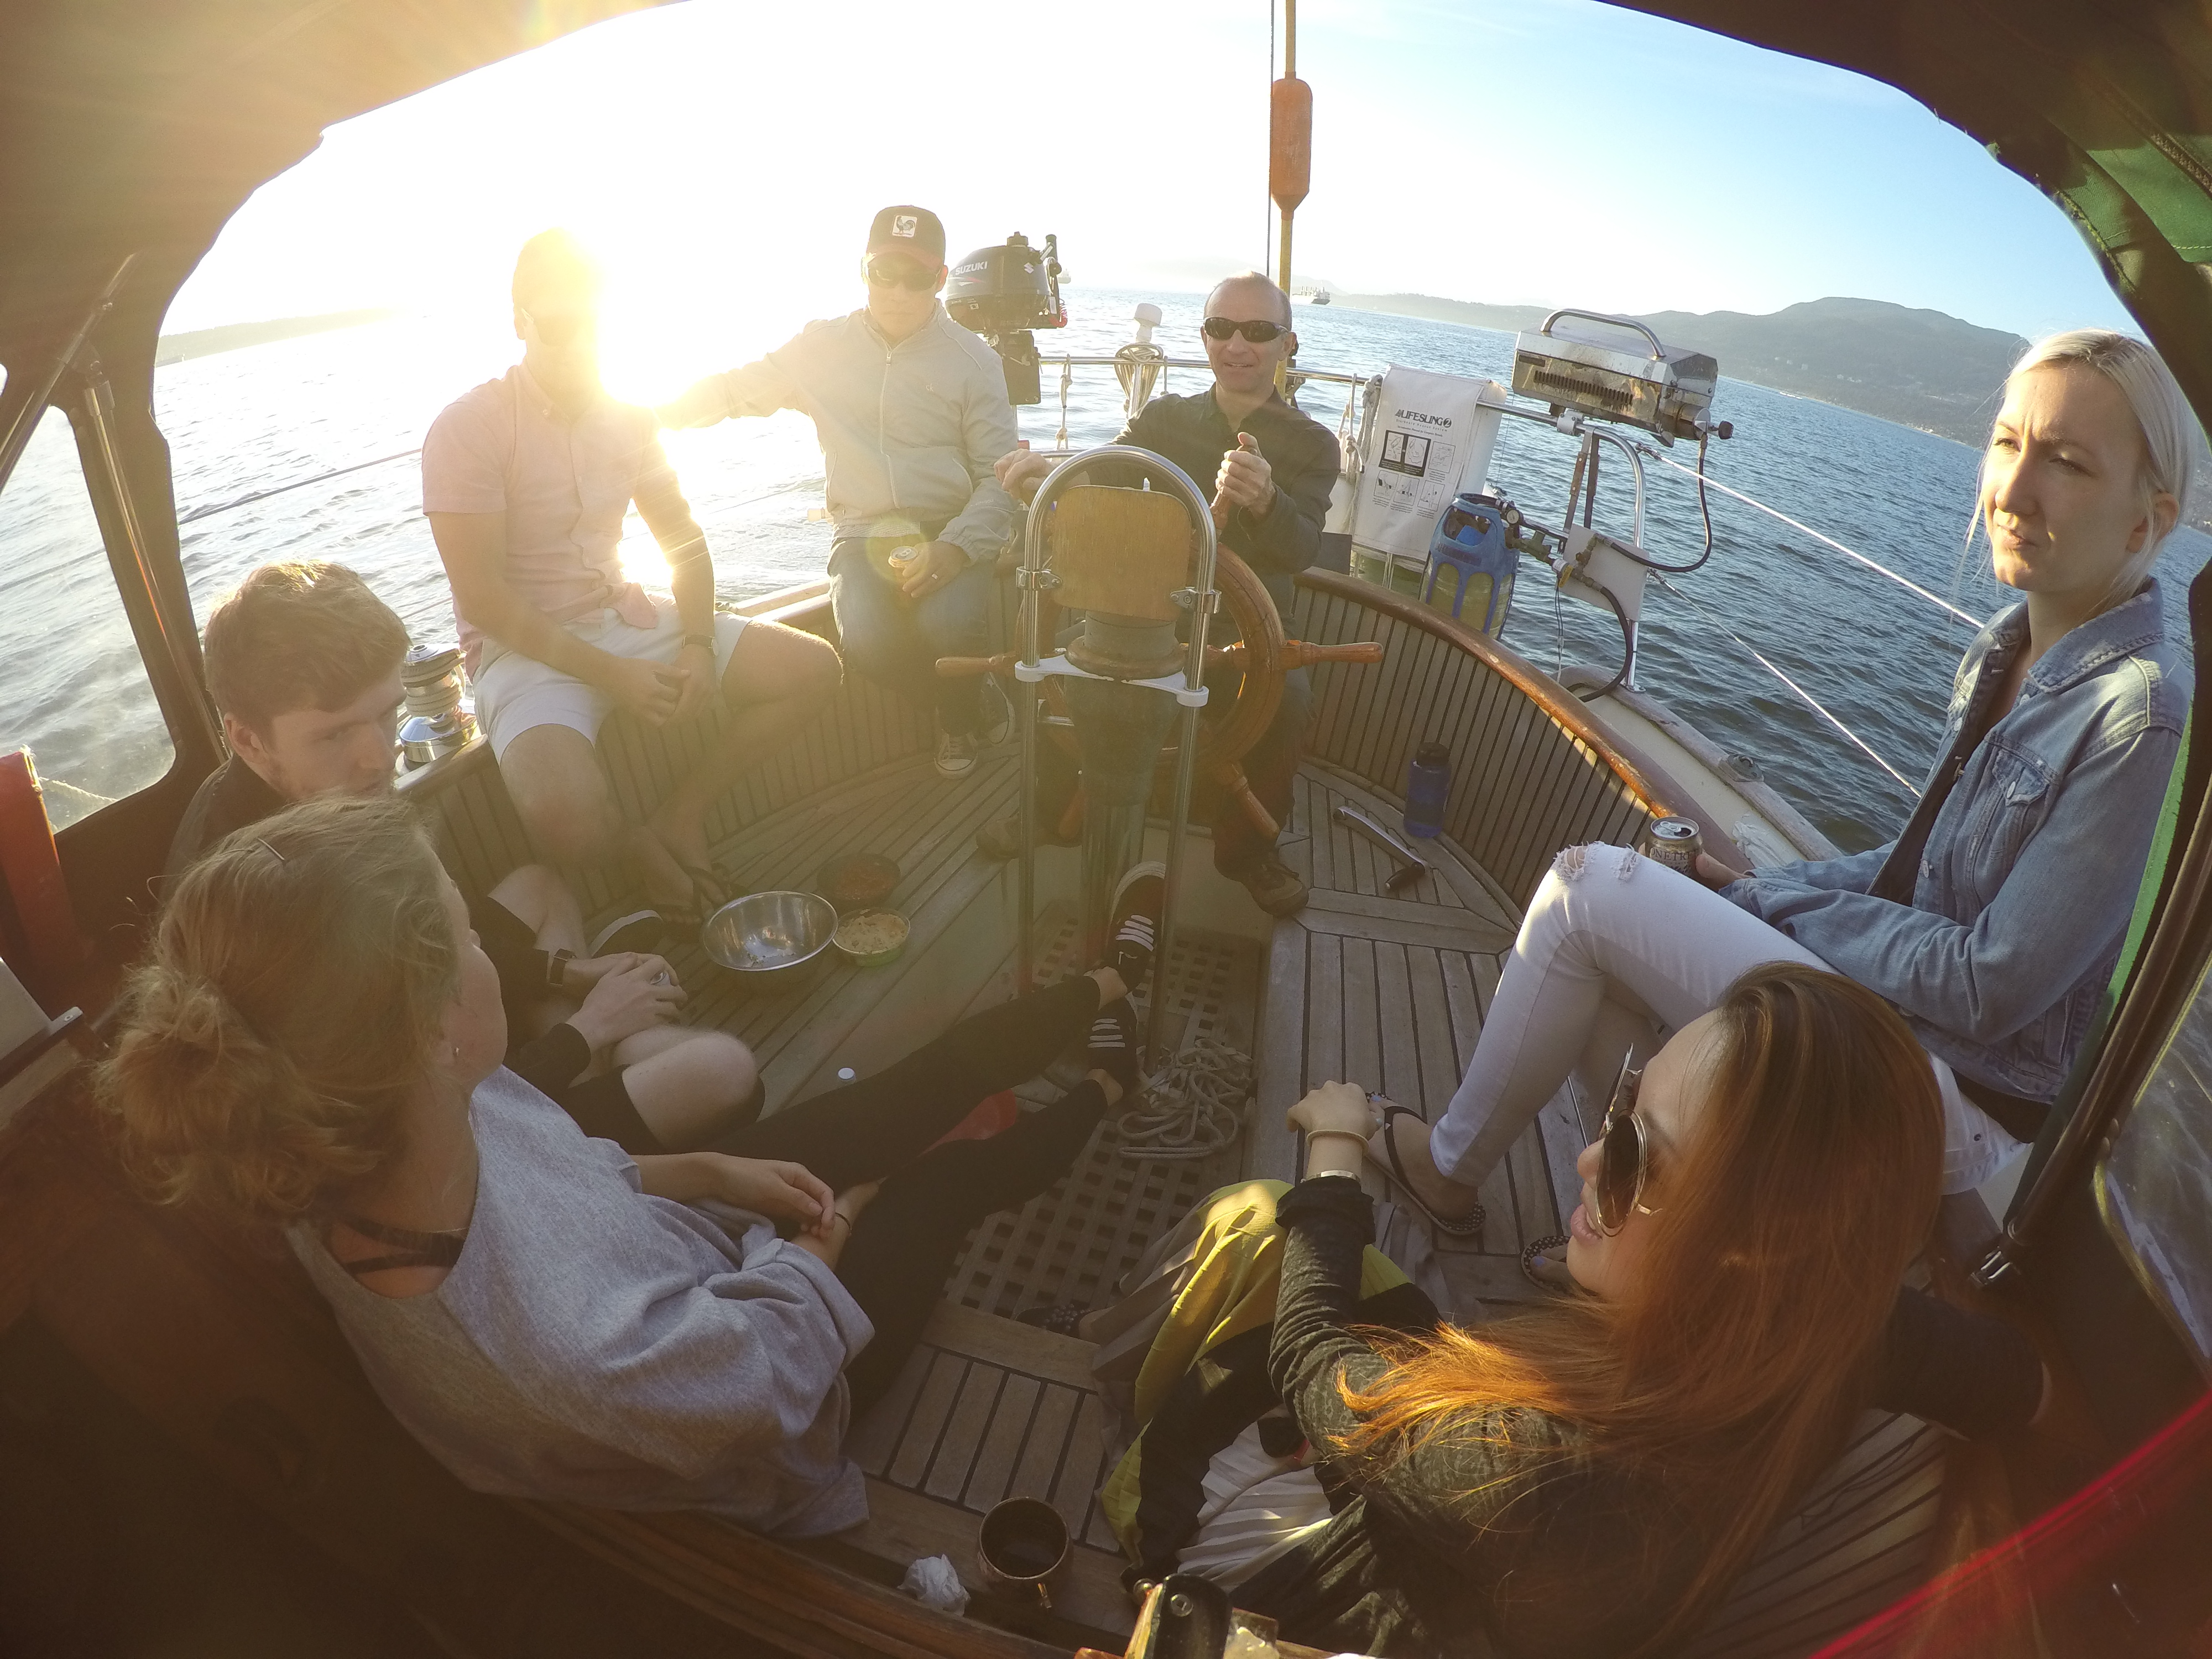 Team Leavetown and Cozystay out for a sail